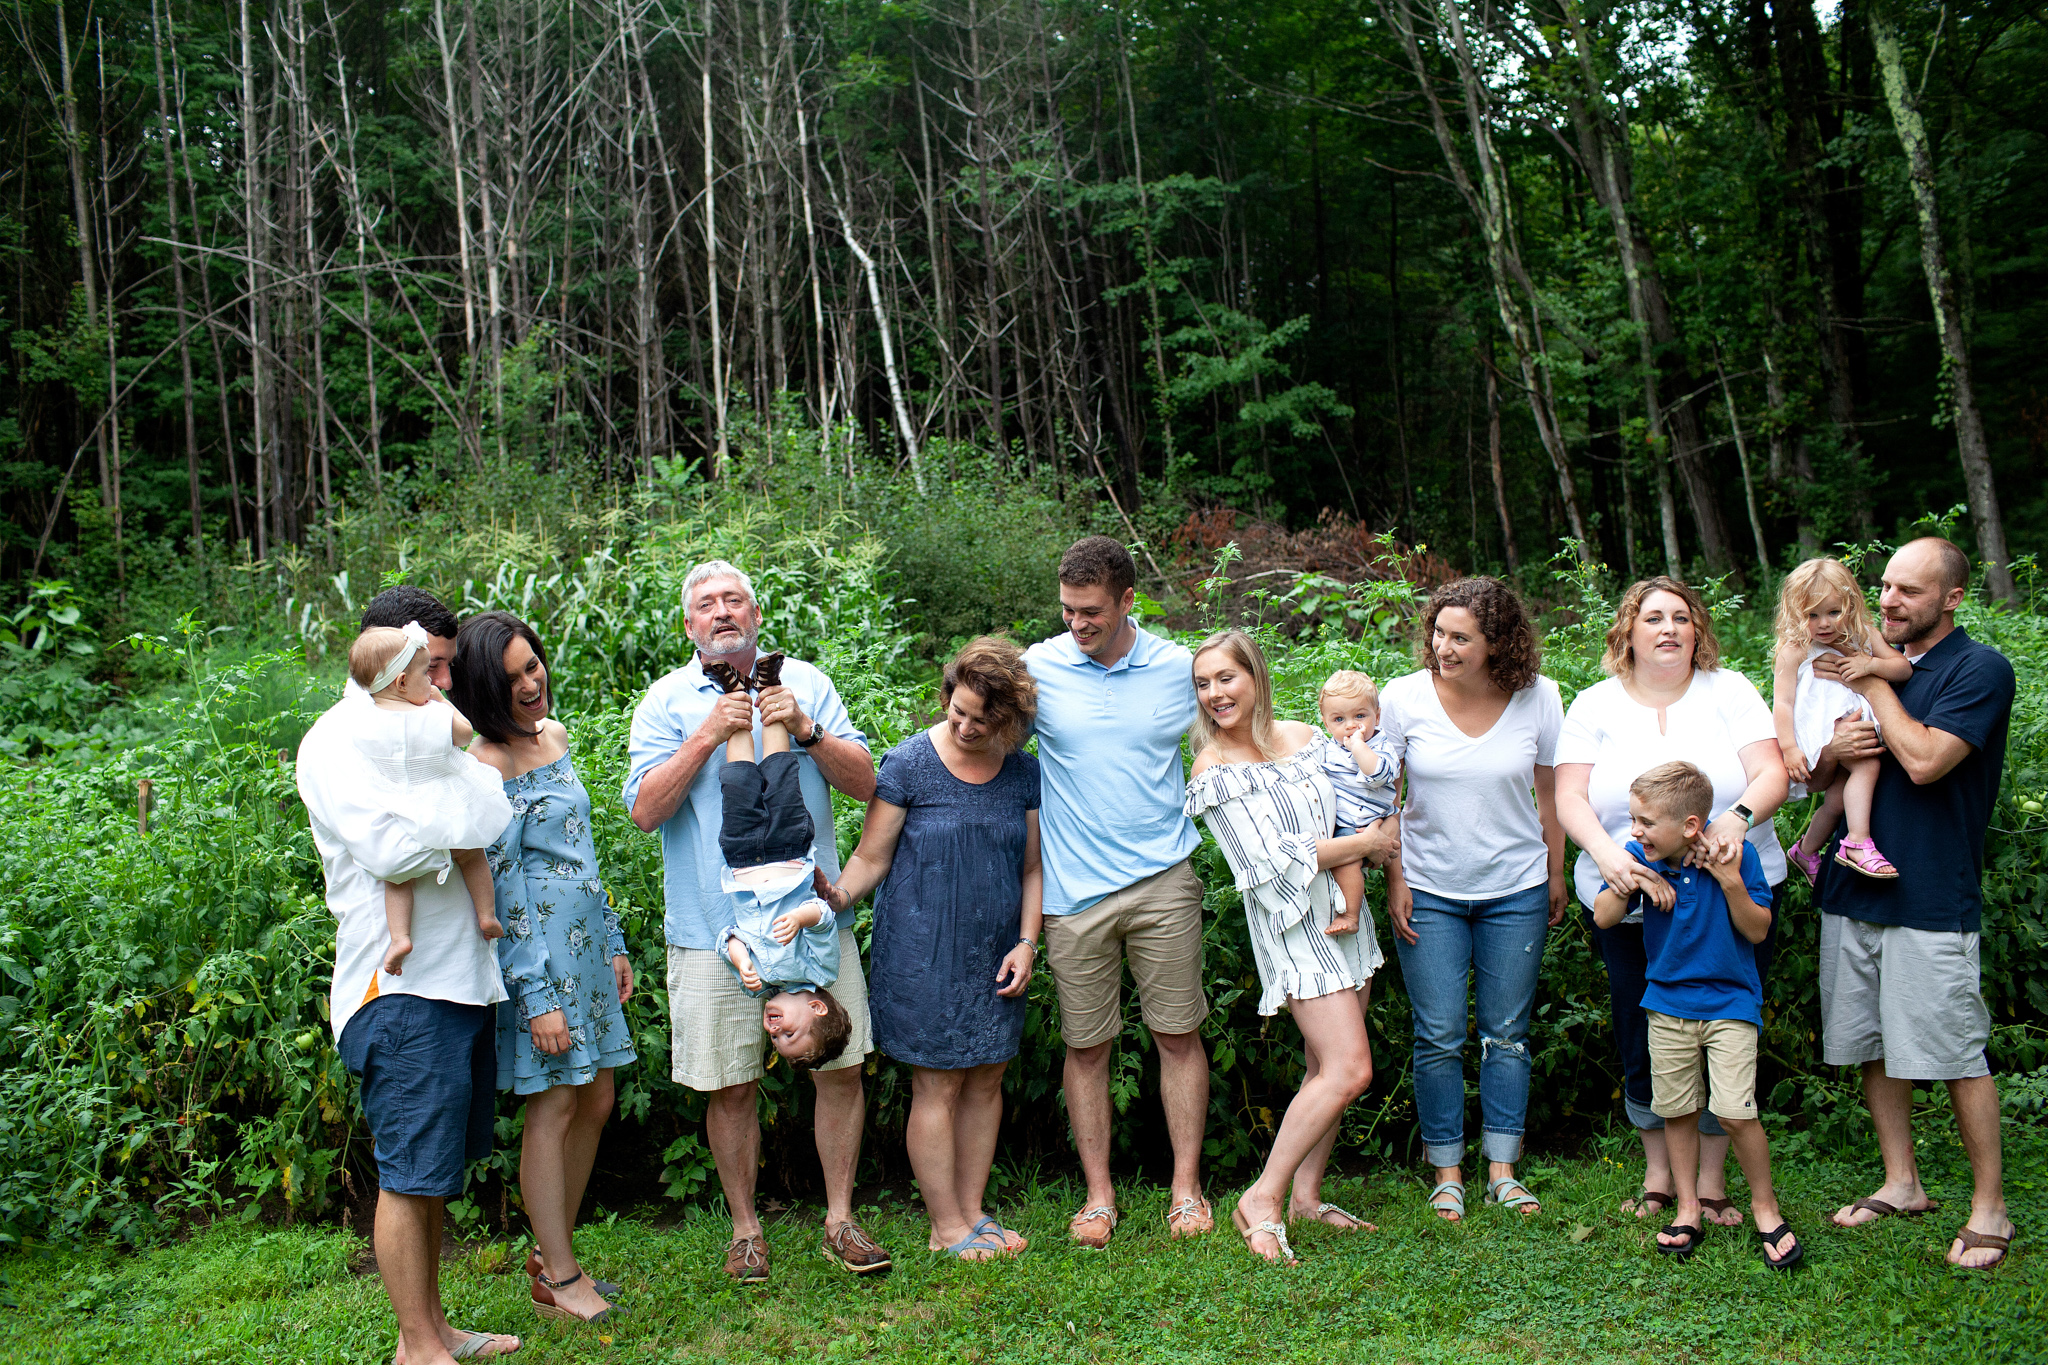 maine-family-photographer-stepheneycollinsphotography-63.jpg